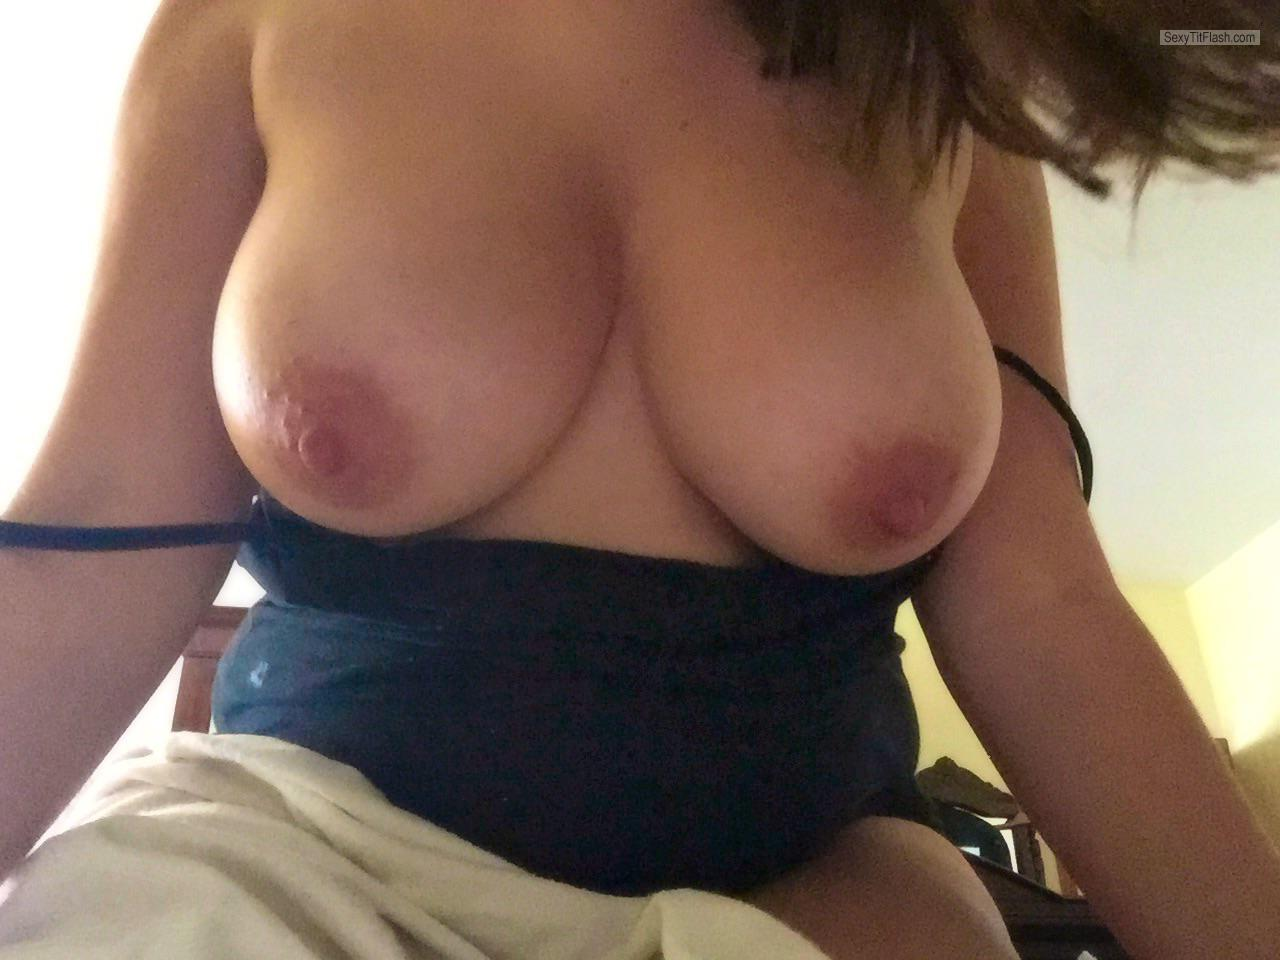 Tit Flash: My Big Tits (Selfie) - Pandora from United Kingdom